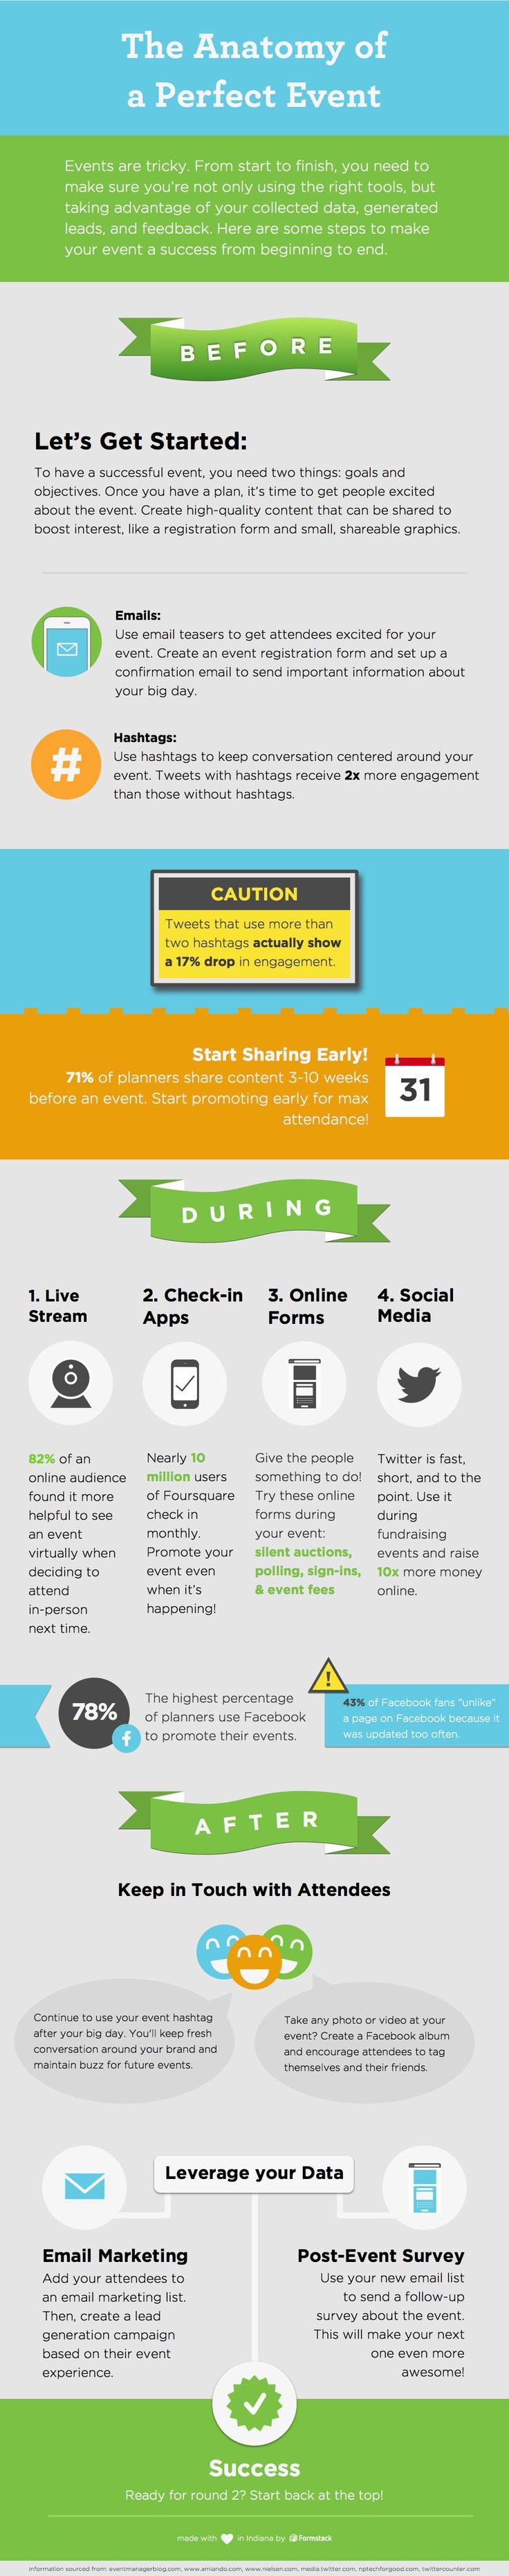 TRYING TO HOST AN EVENT ONLINE? (INFOGRAPHIC) - Anatomy of perfect event | via #BornToBeSocial - Pinterest Marketing